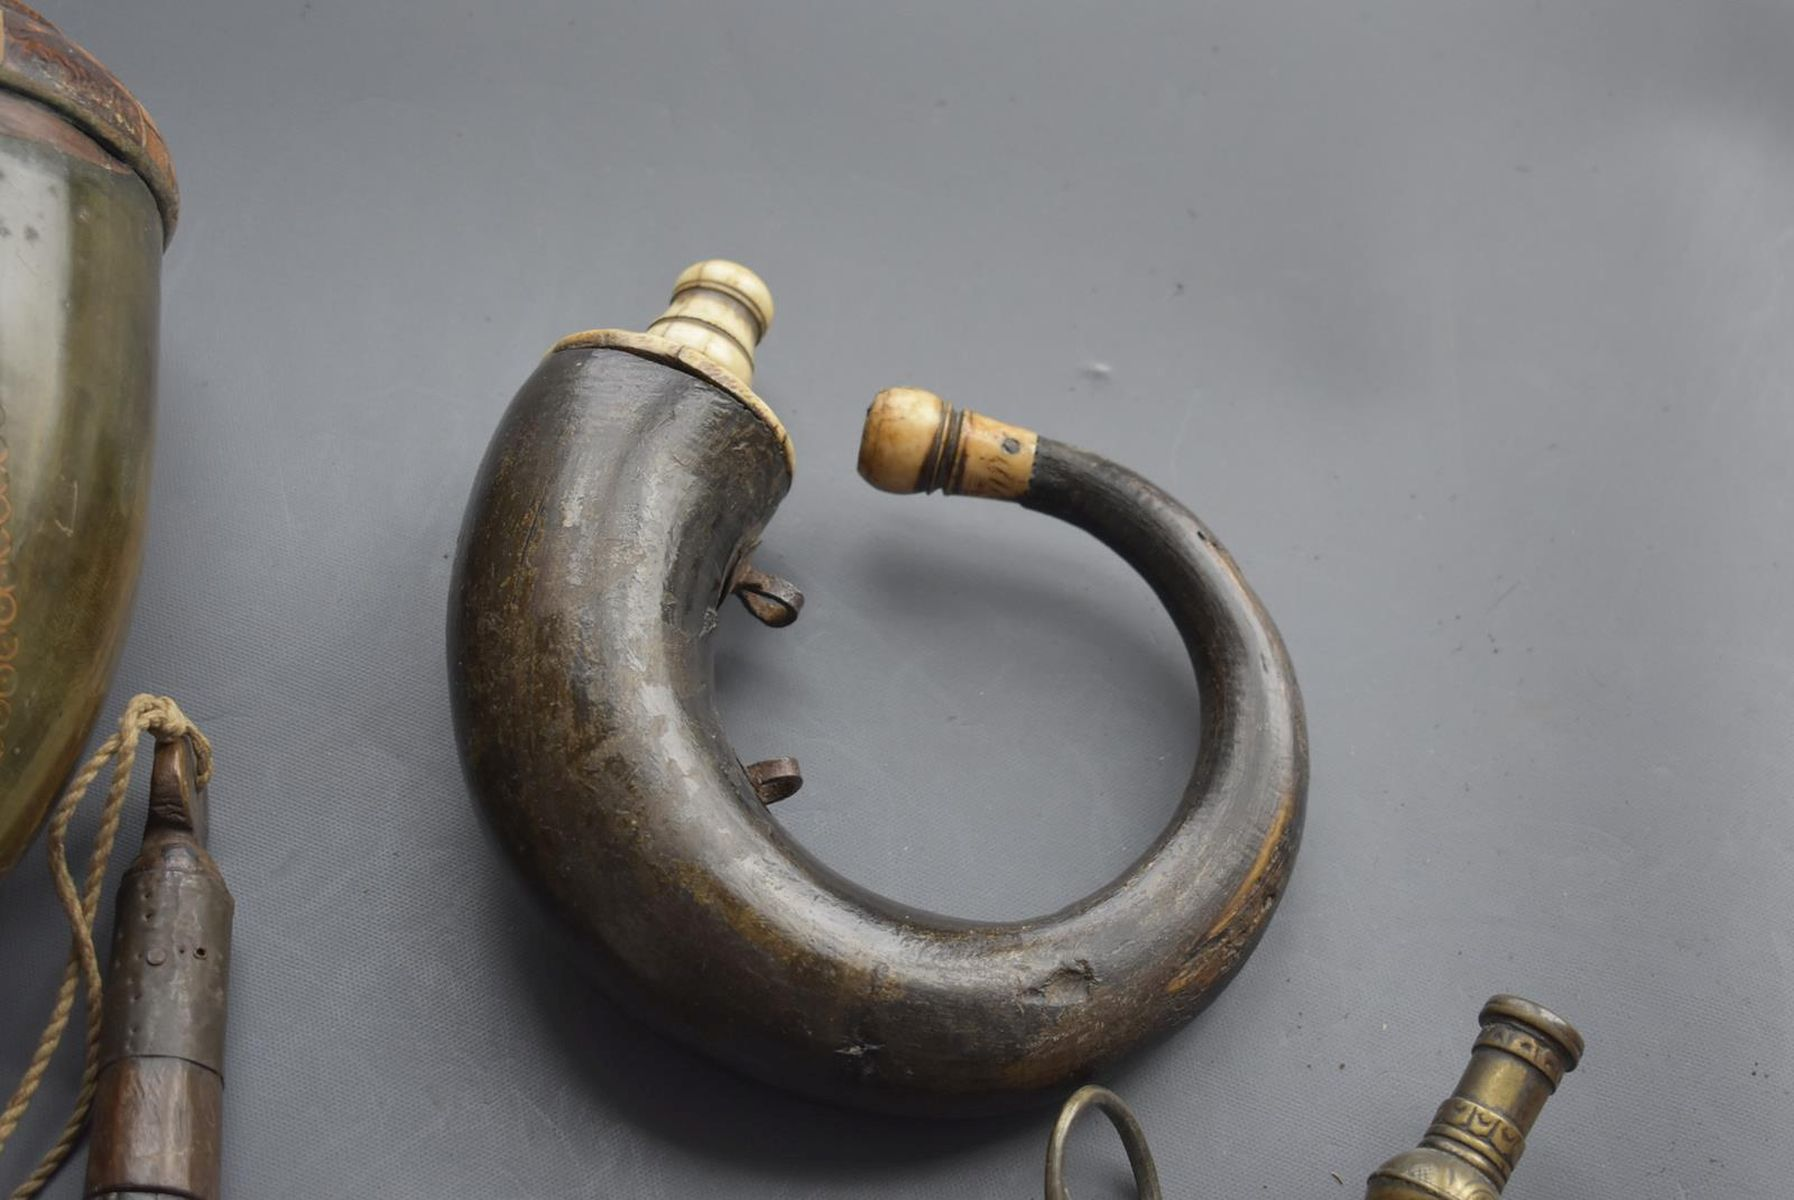 A 19TH CENTURY OTTOMAN POWDER HORN, of characteristic curling form, together with another similar - Image 7 of 8